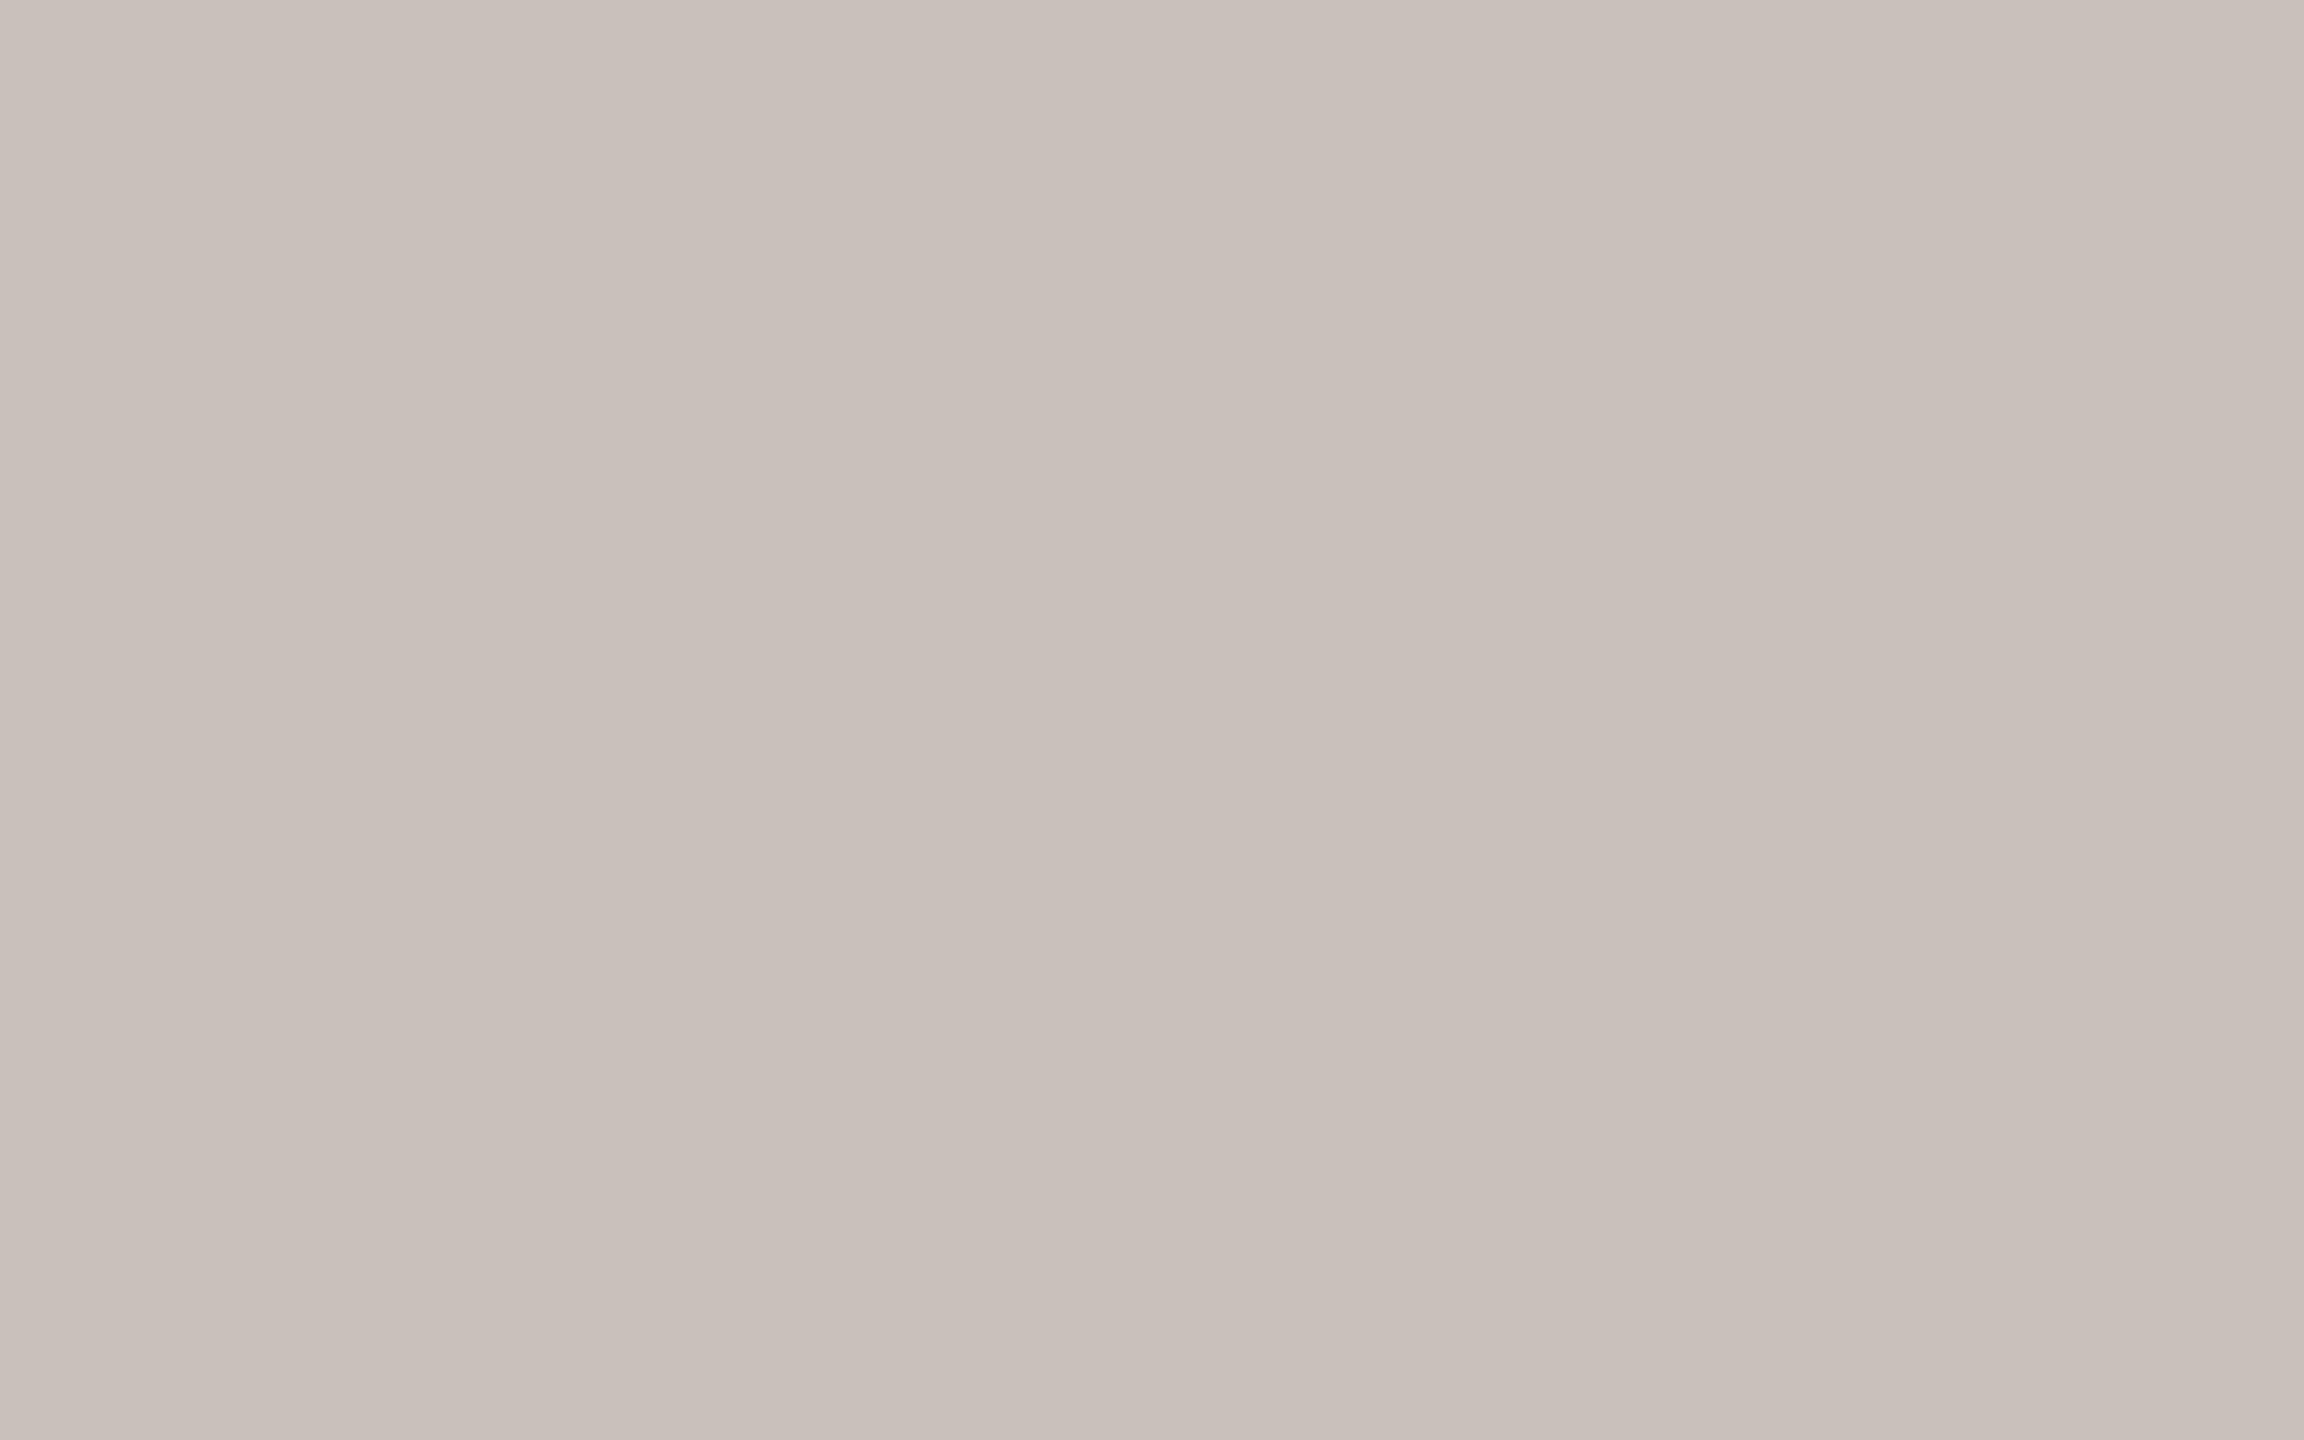 2304x1440 Pale Silver Solid Color Background